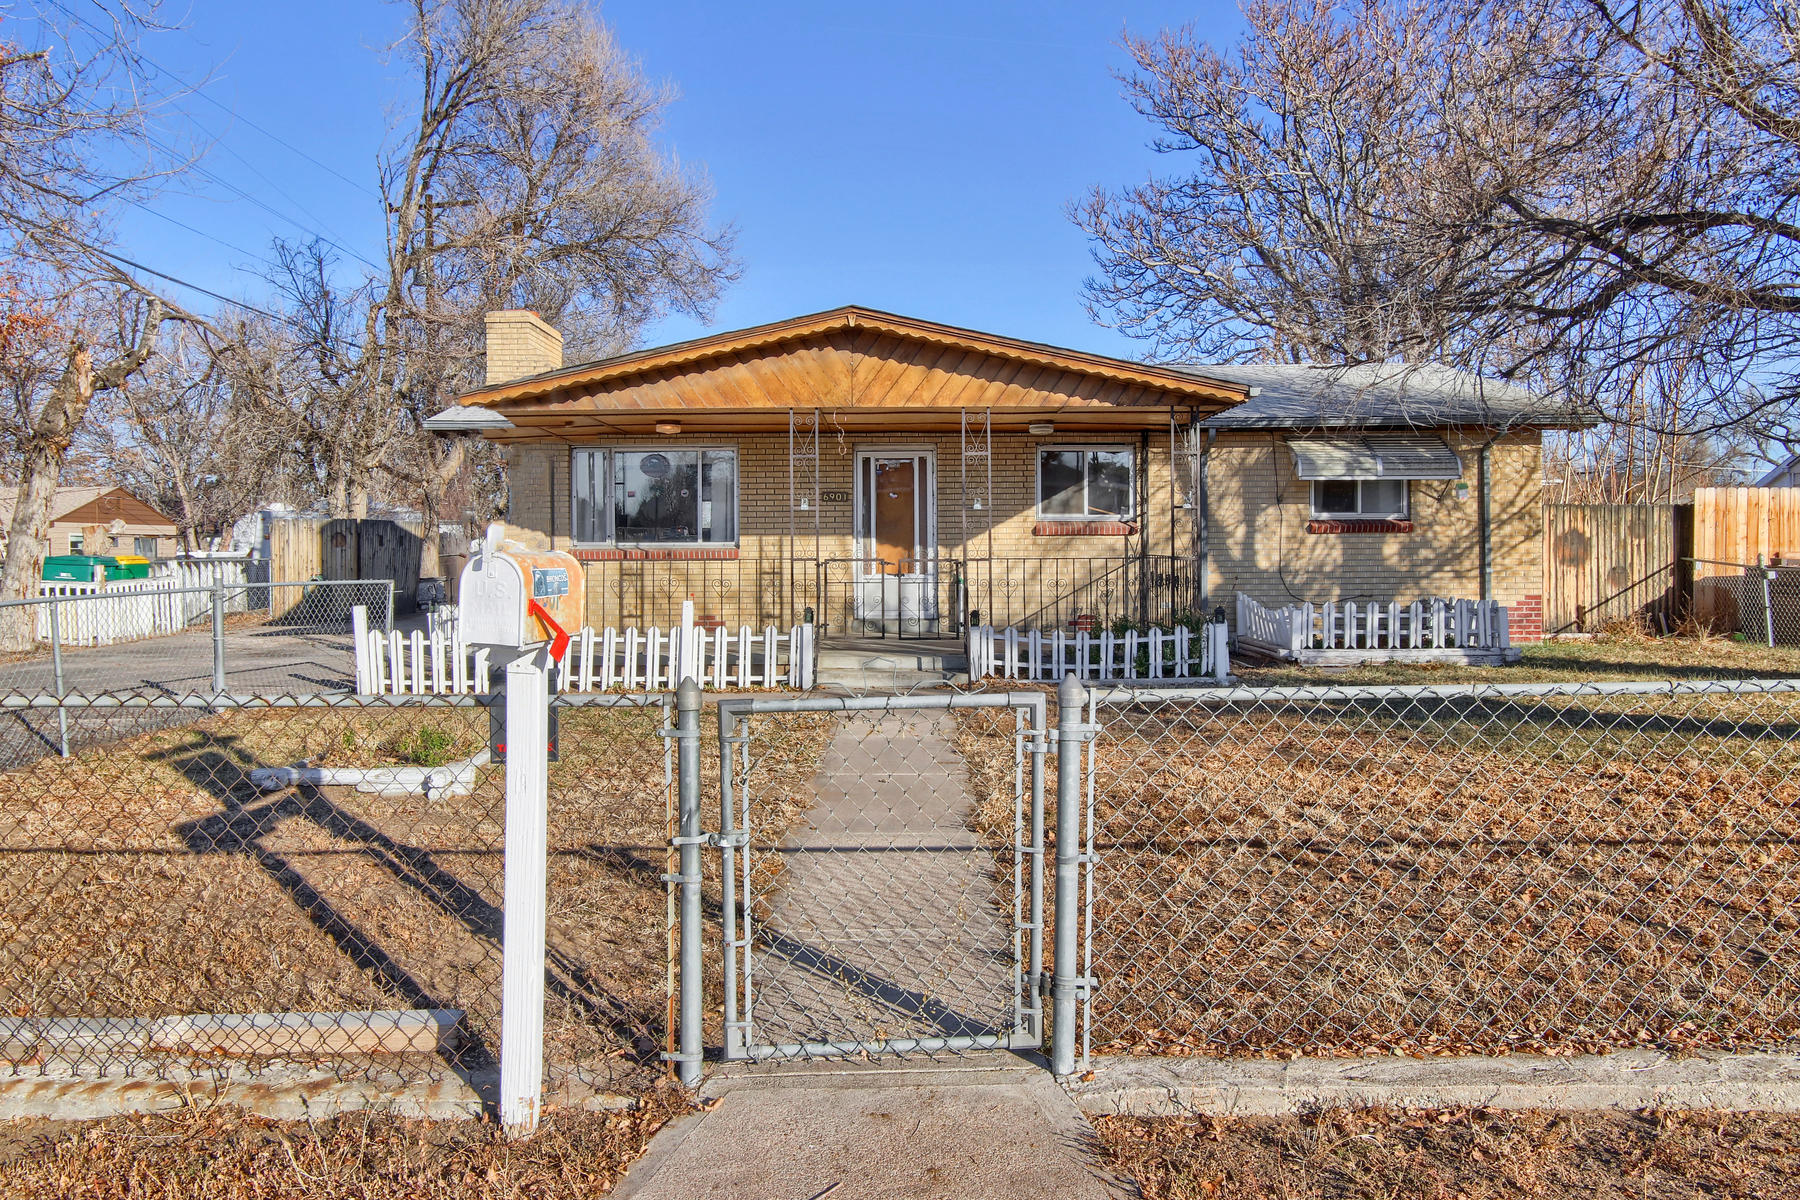 Single Family Home for Active at Let your imagination run wild in this 1970 ranch-style home! 6901 E 64th Ave Commerce City, Colorado 80022 United States